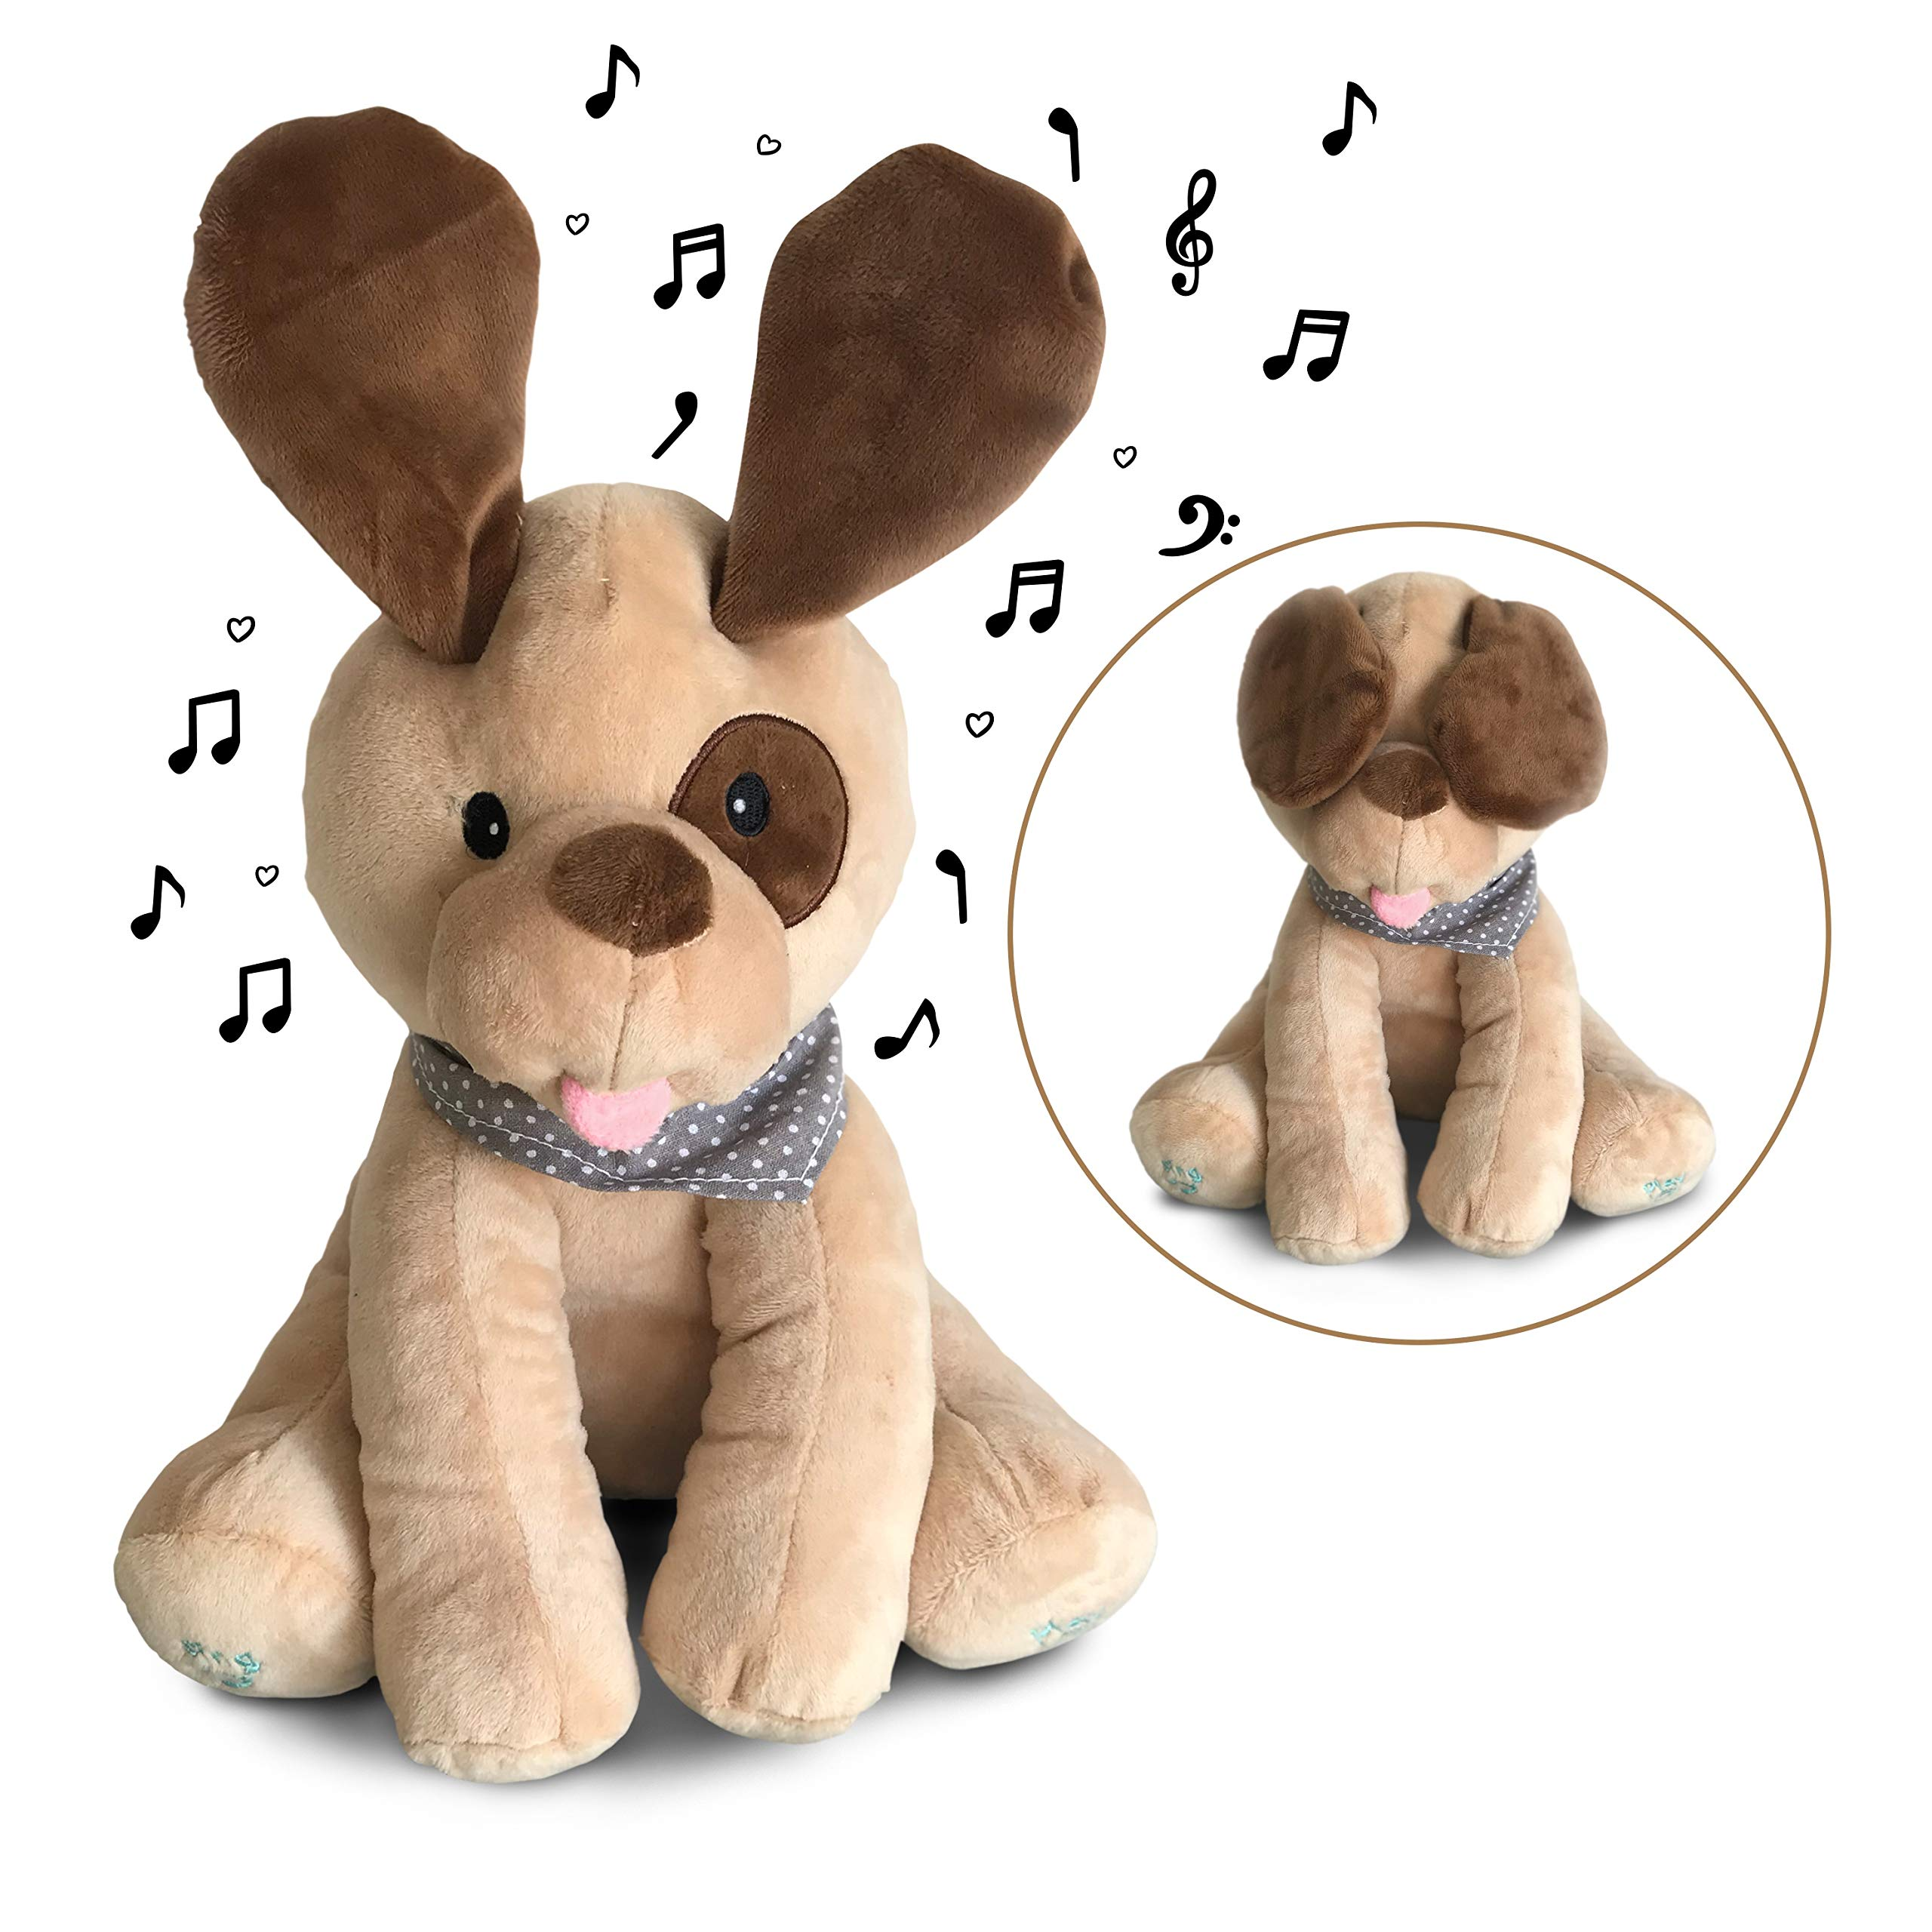 Plush Peek-A-Boo Puppy Dog Toy for Toddlers, Babies, Infants  -  Singing Interactive Stuffed Animals for Boys, Girls  -  Soft Musical Toys for Kids  -  Sings, Plays Games  -  Adorable by X & O Baby